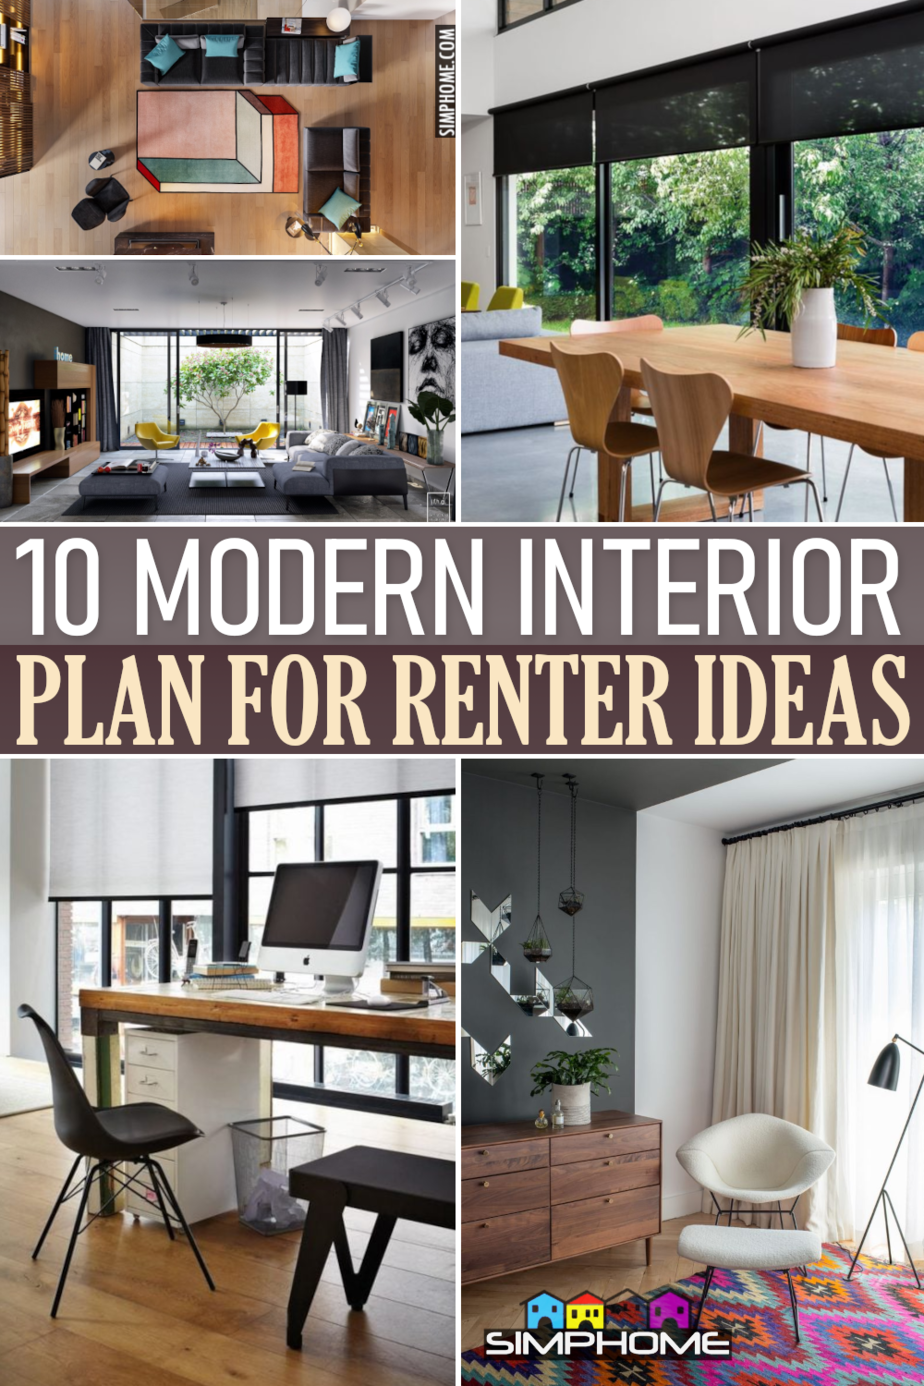 10 Modern Interior Plan for Renters via Simphome.comFeatured